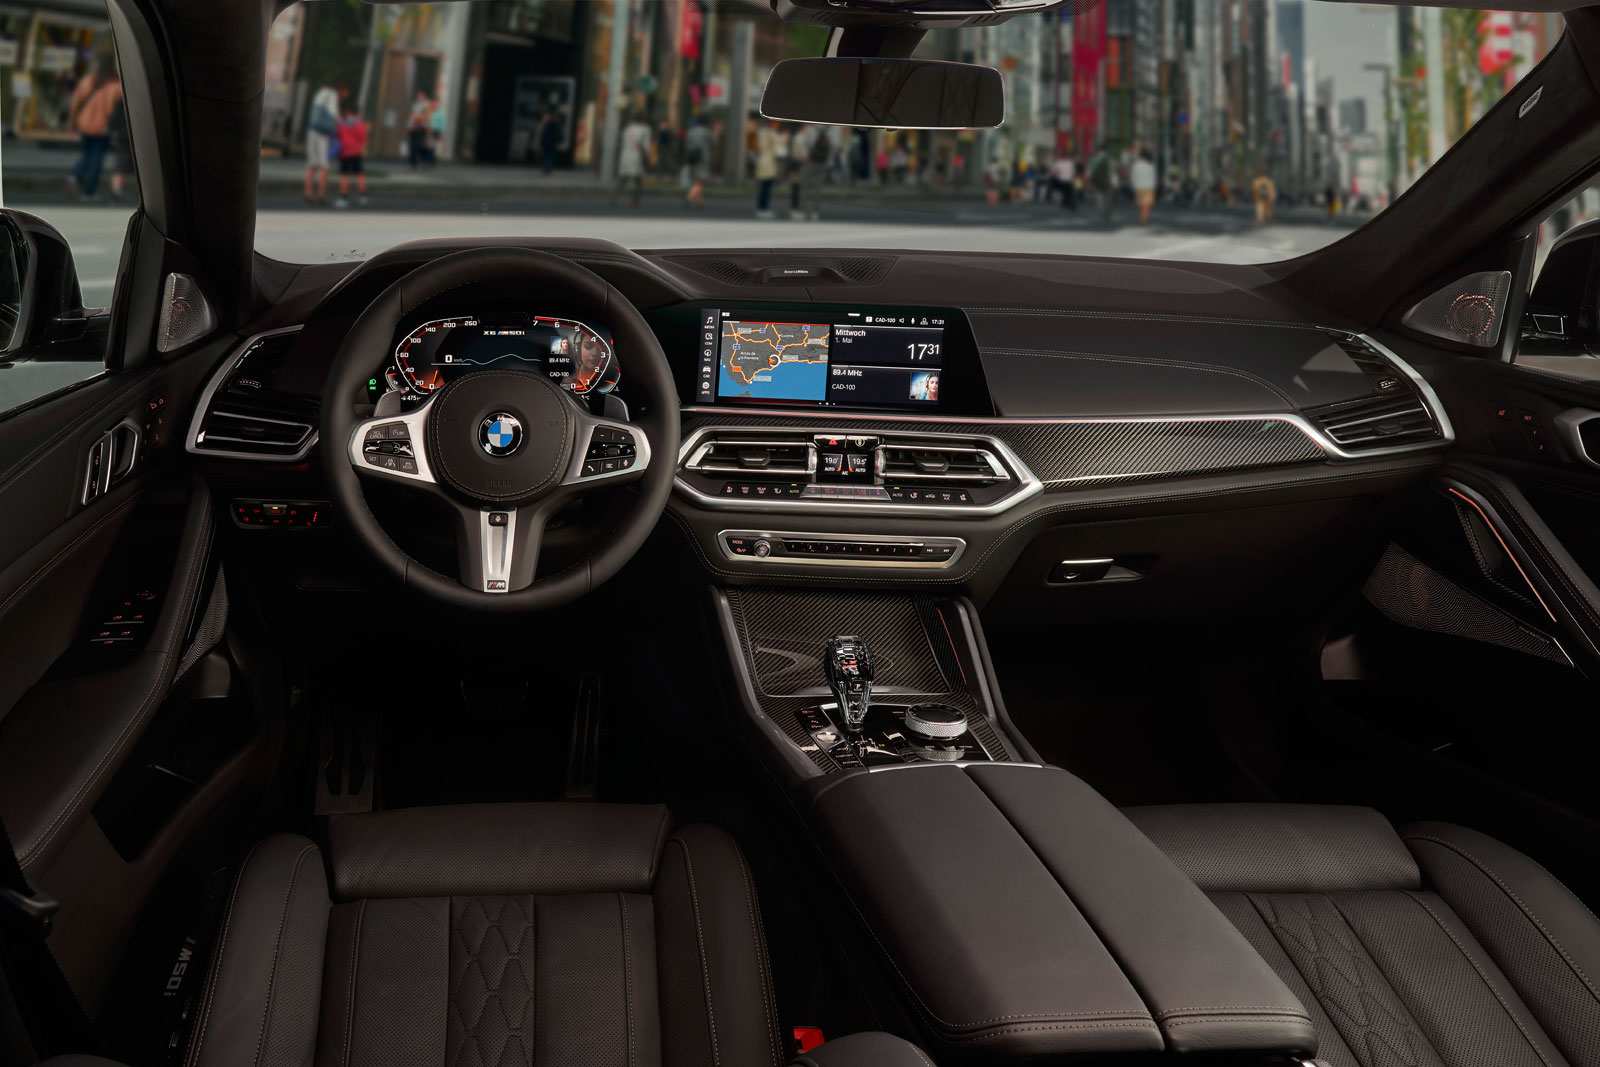 New BMW X6 Interior